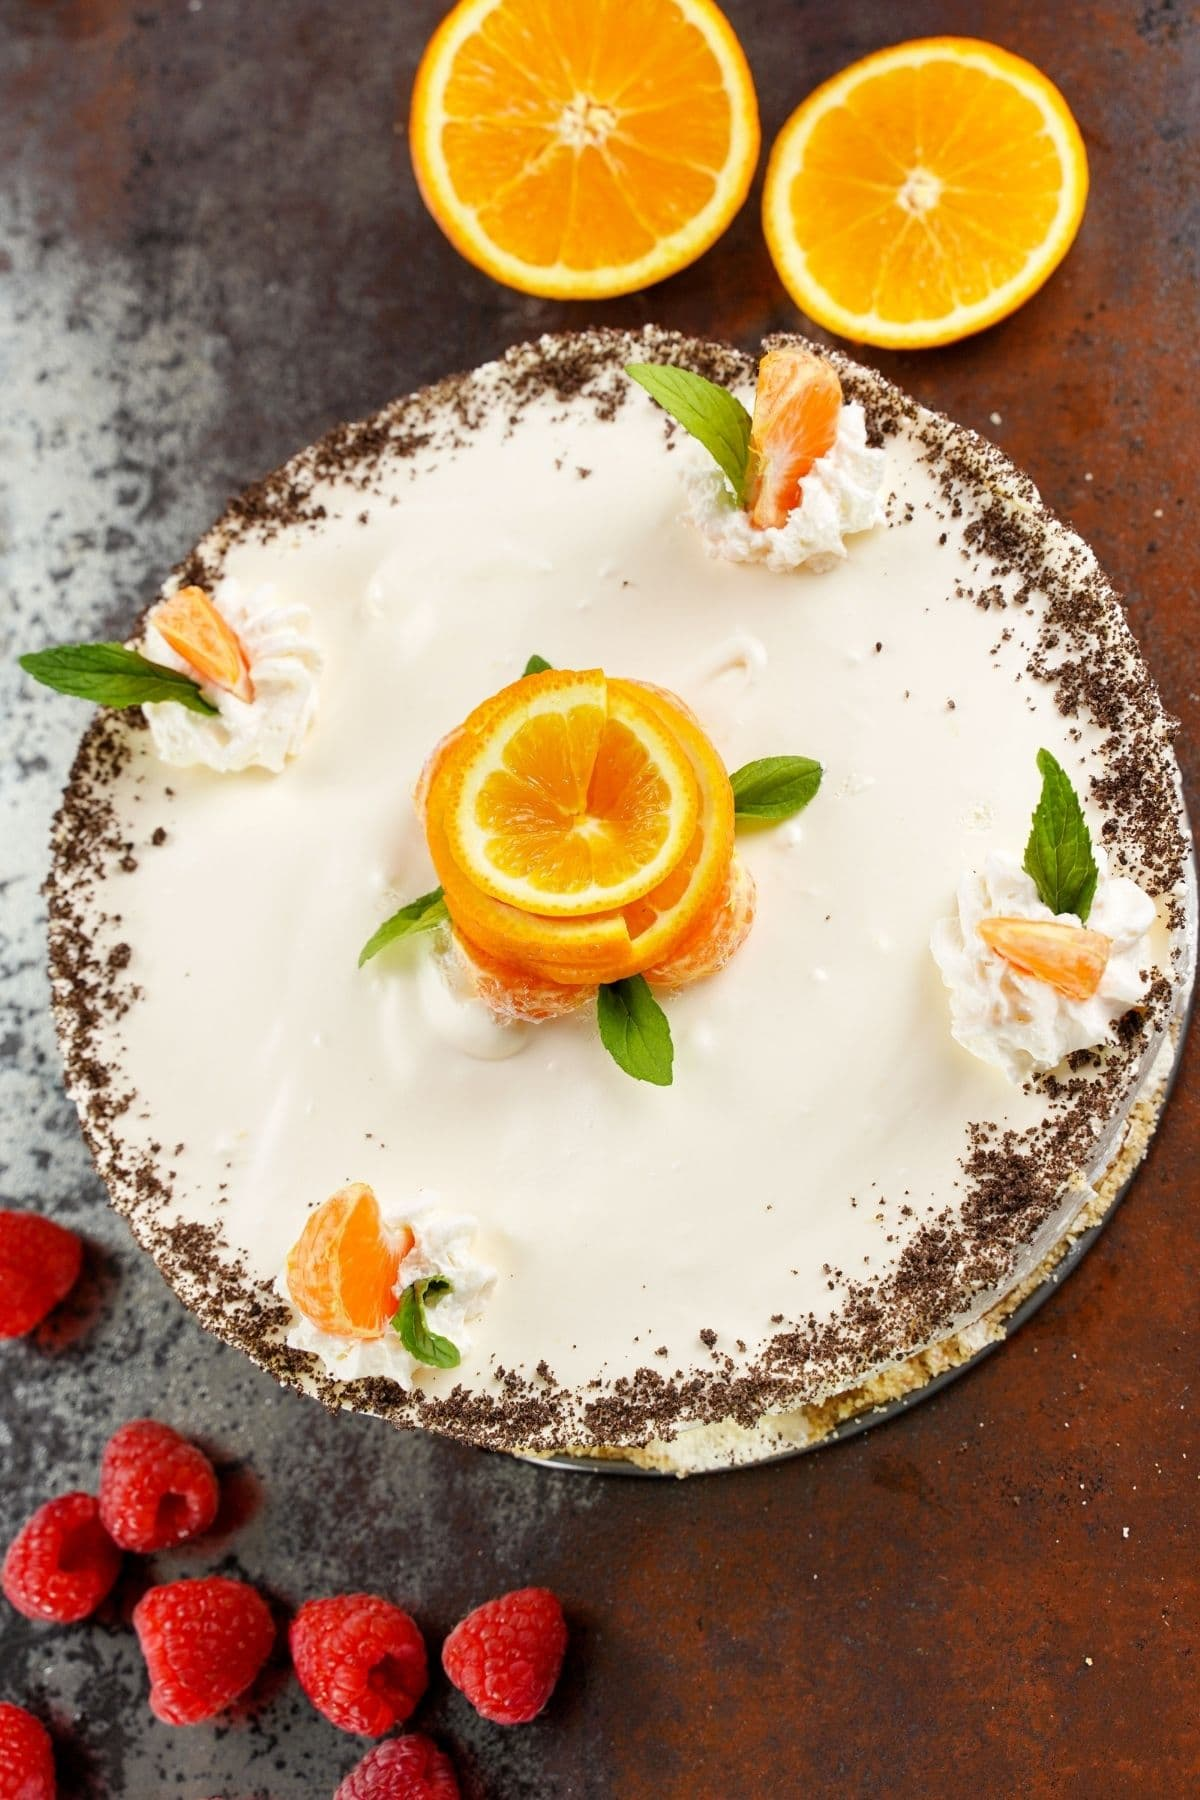 Whole cake topped with orange roses sitting on brown table by raspberries and half an orange